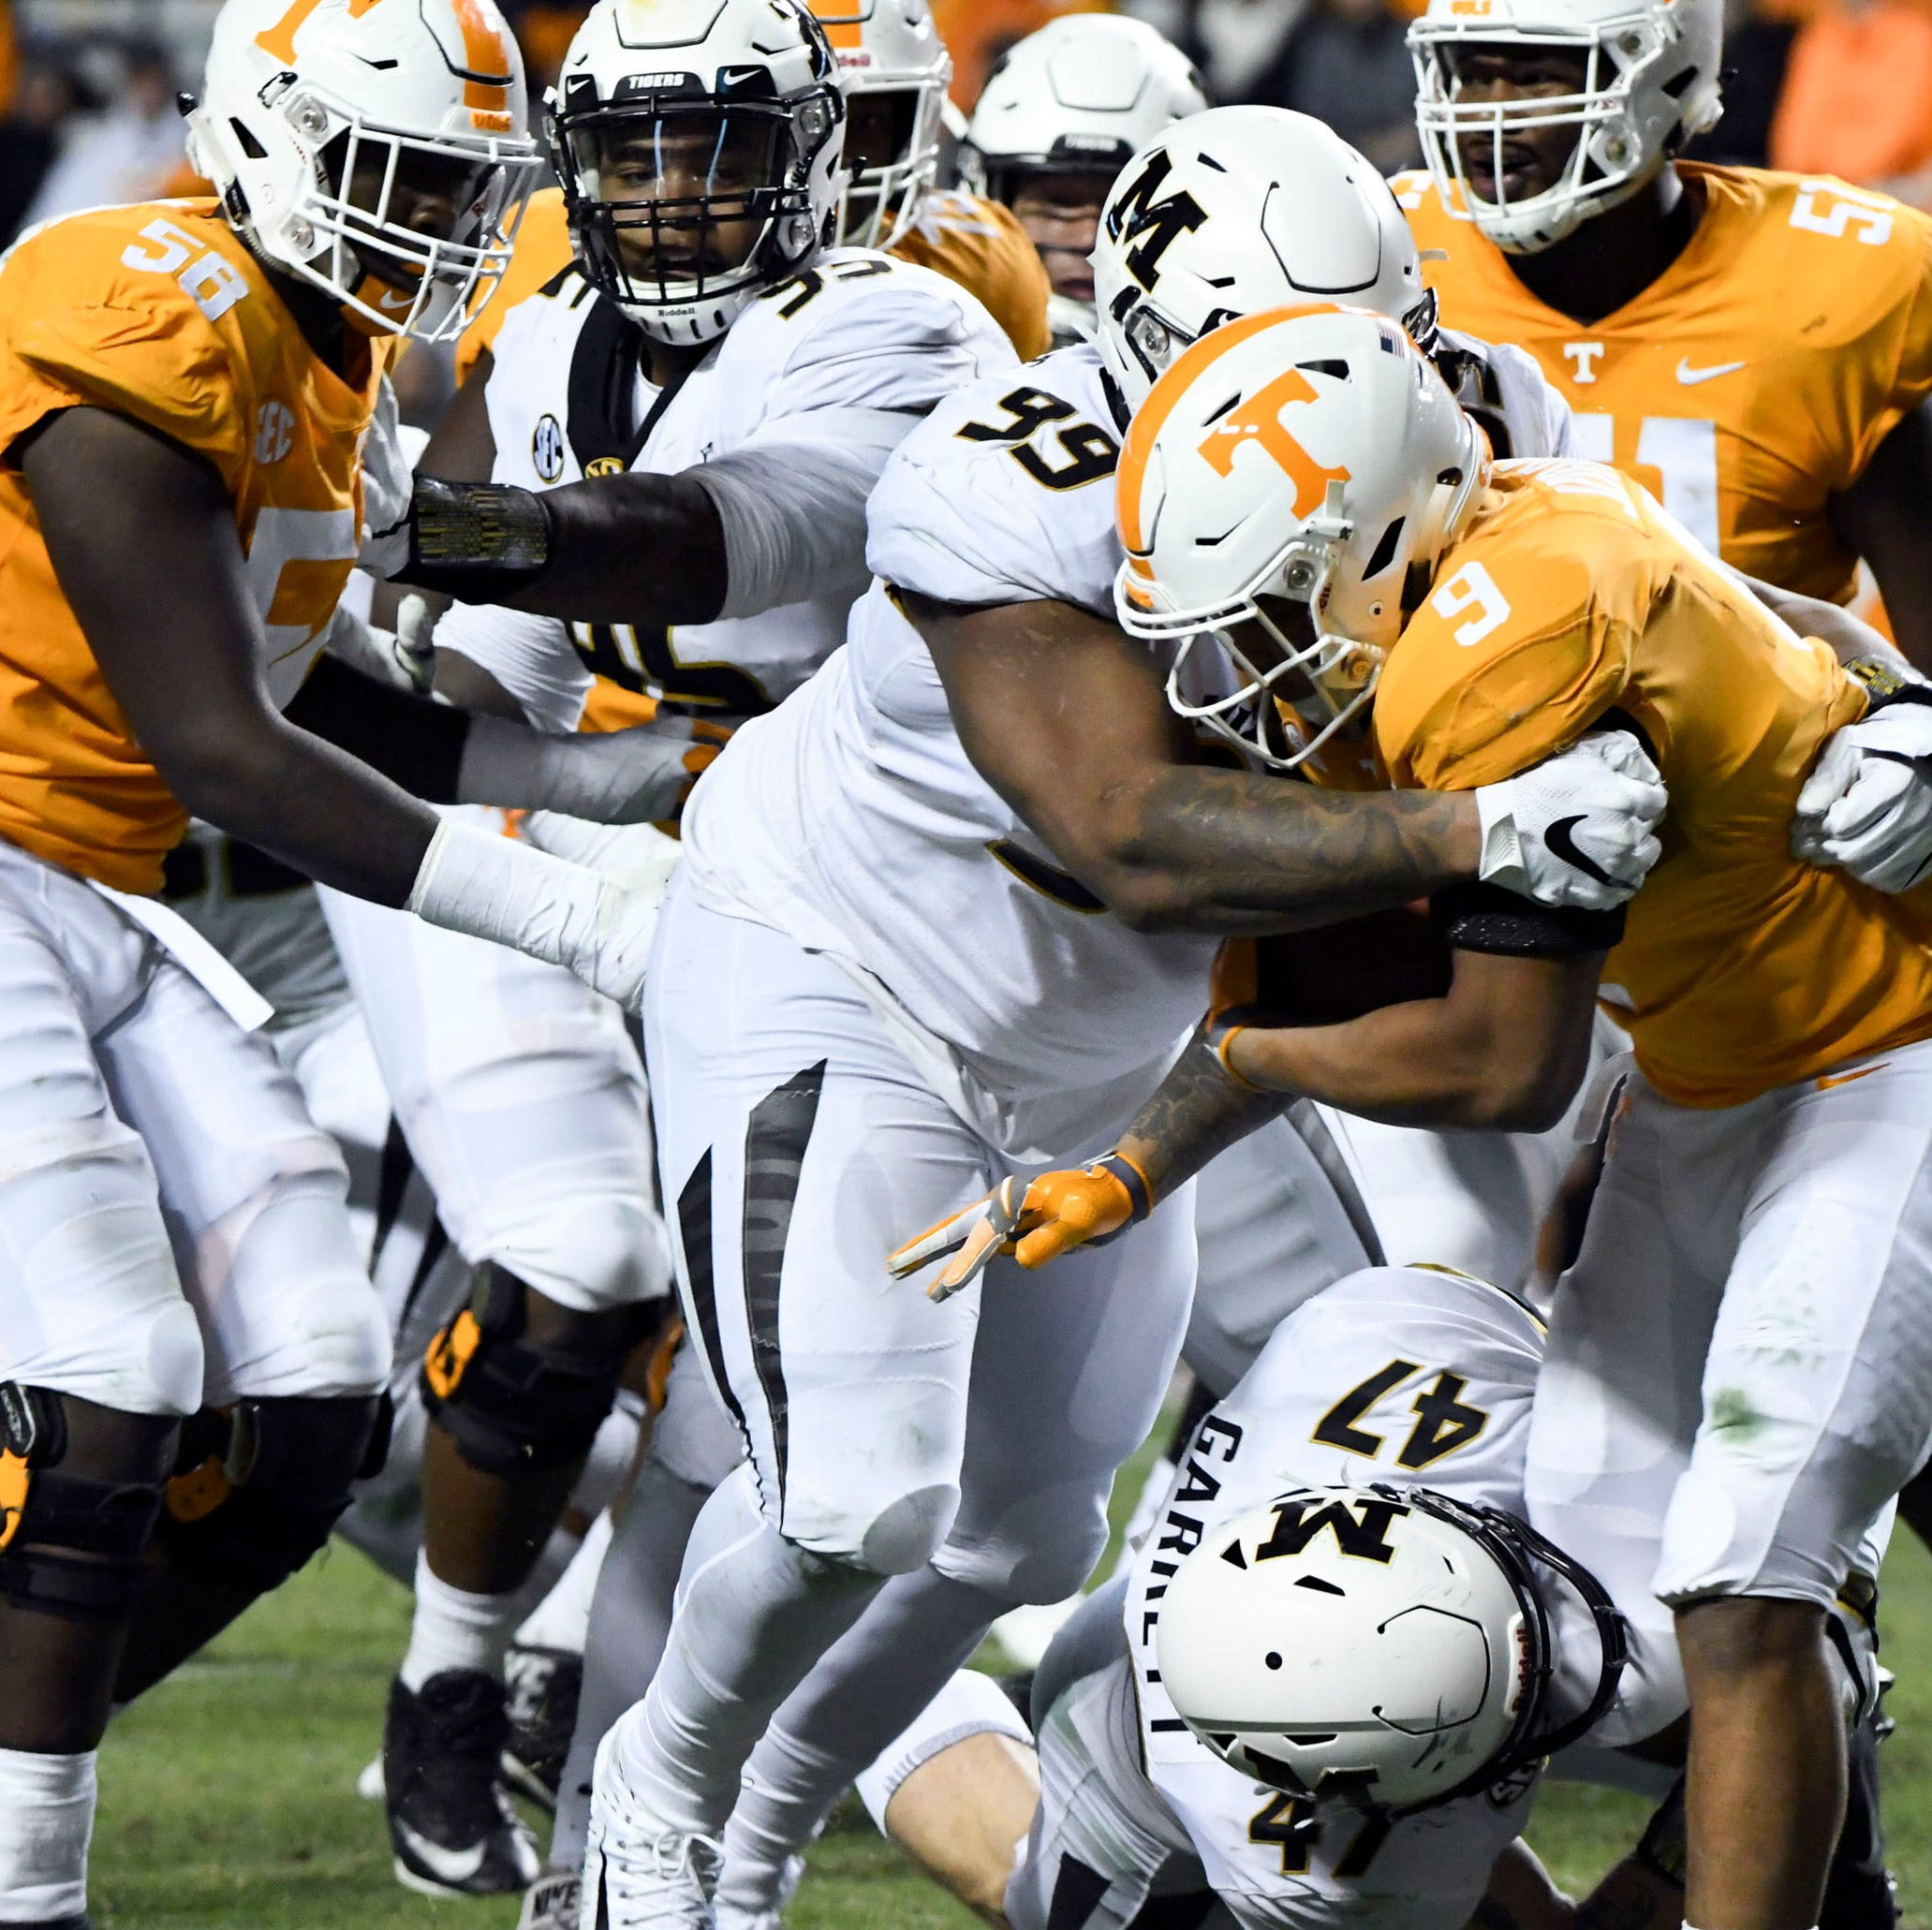 UT Vols football continues Jekyll-and-Hyde season in clunker of a loss to Missouri